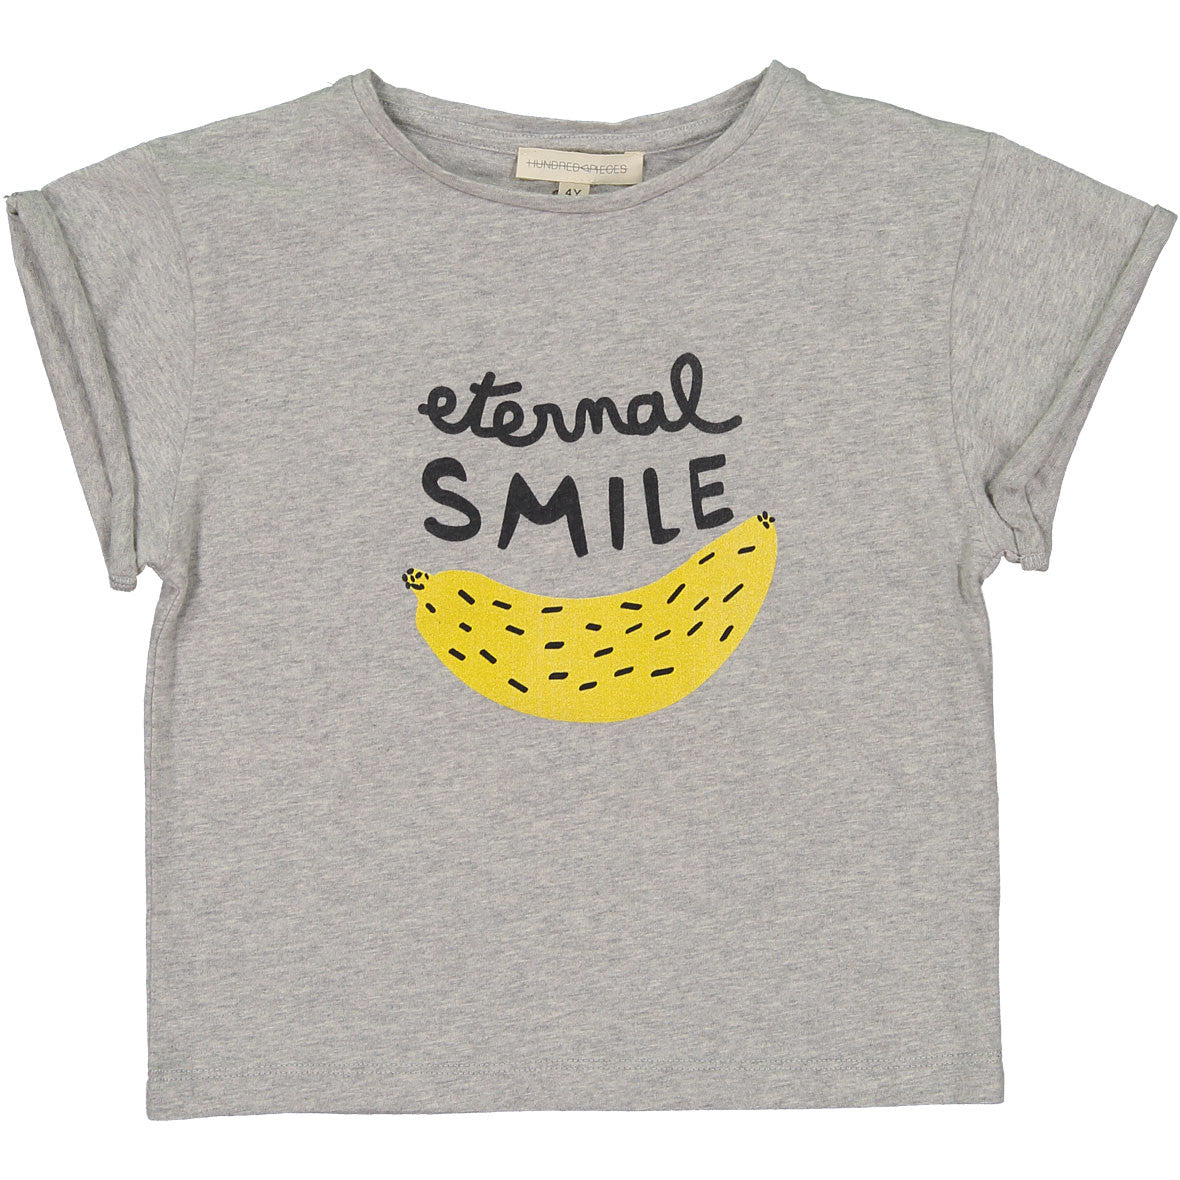 Hundred Pieces Eternal Smile Tee - Ladida